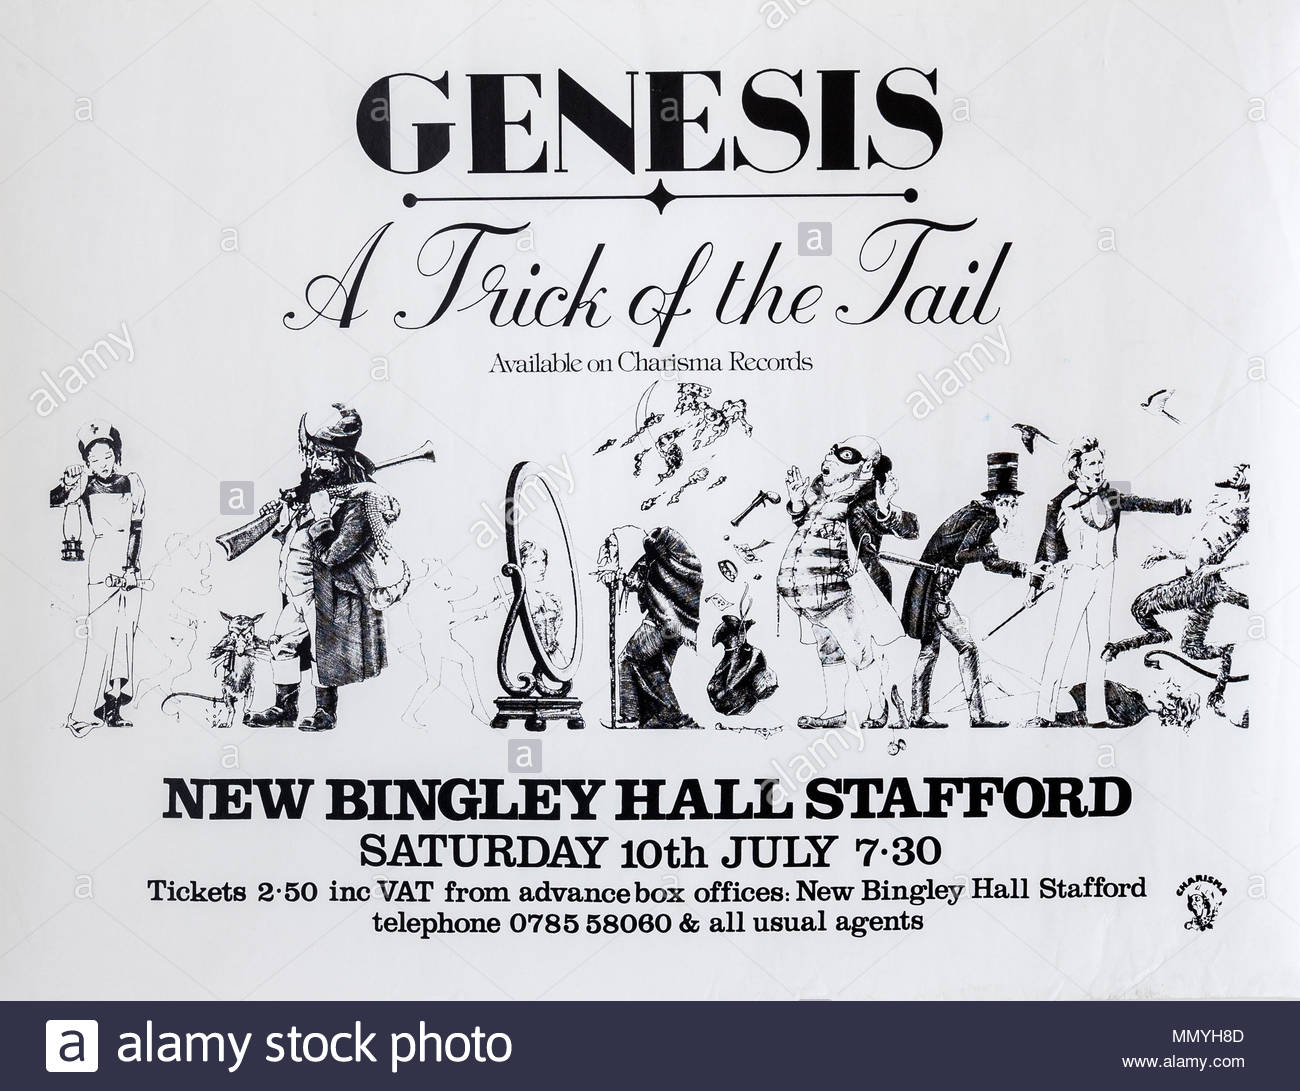 genesis-a-trick-of-the-tail-new-bingley-